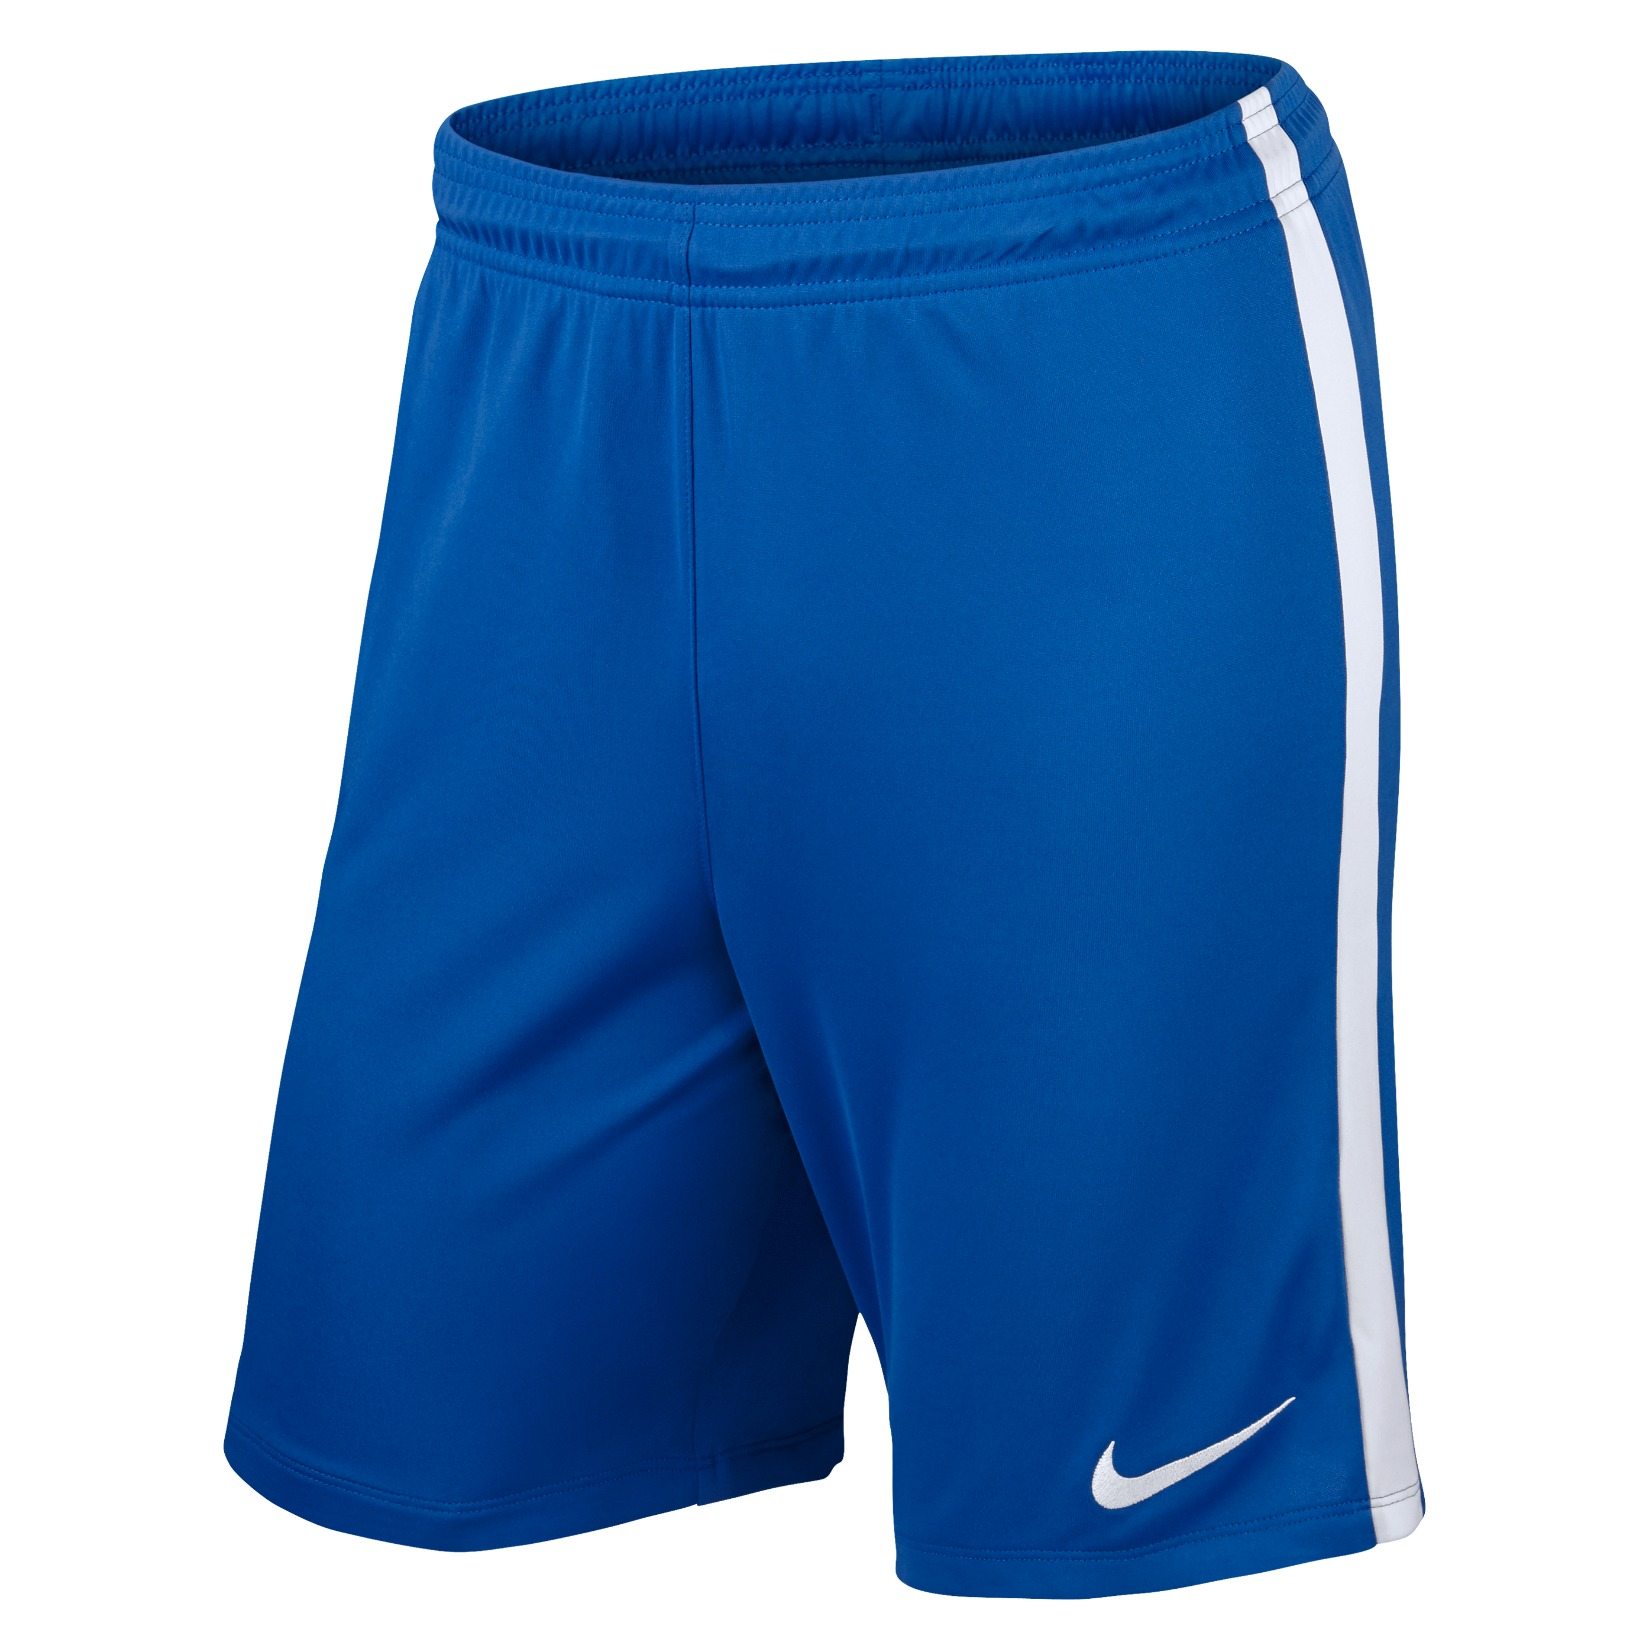 Nike League Knit Short Royal Blue-White-White